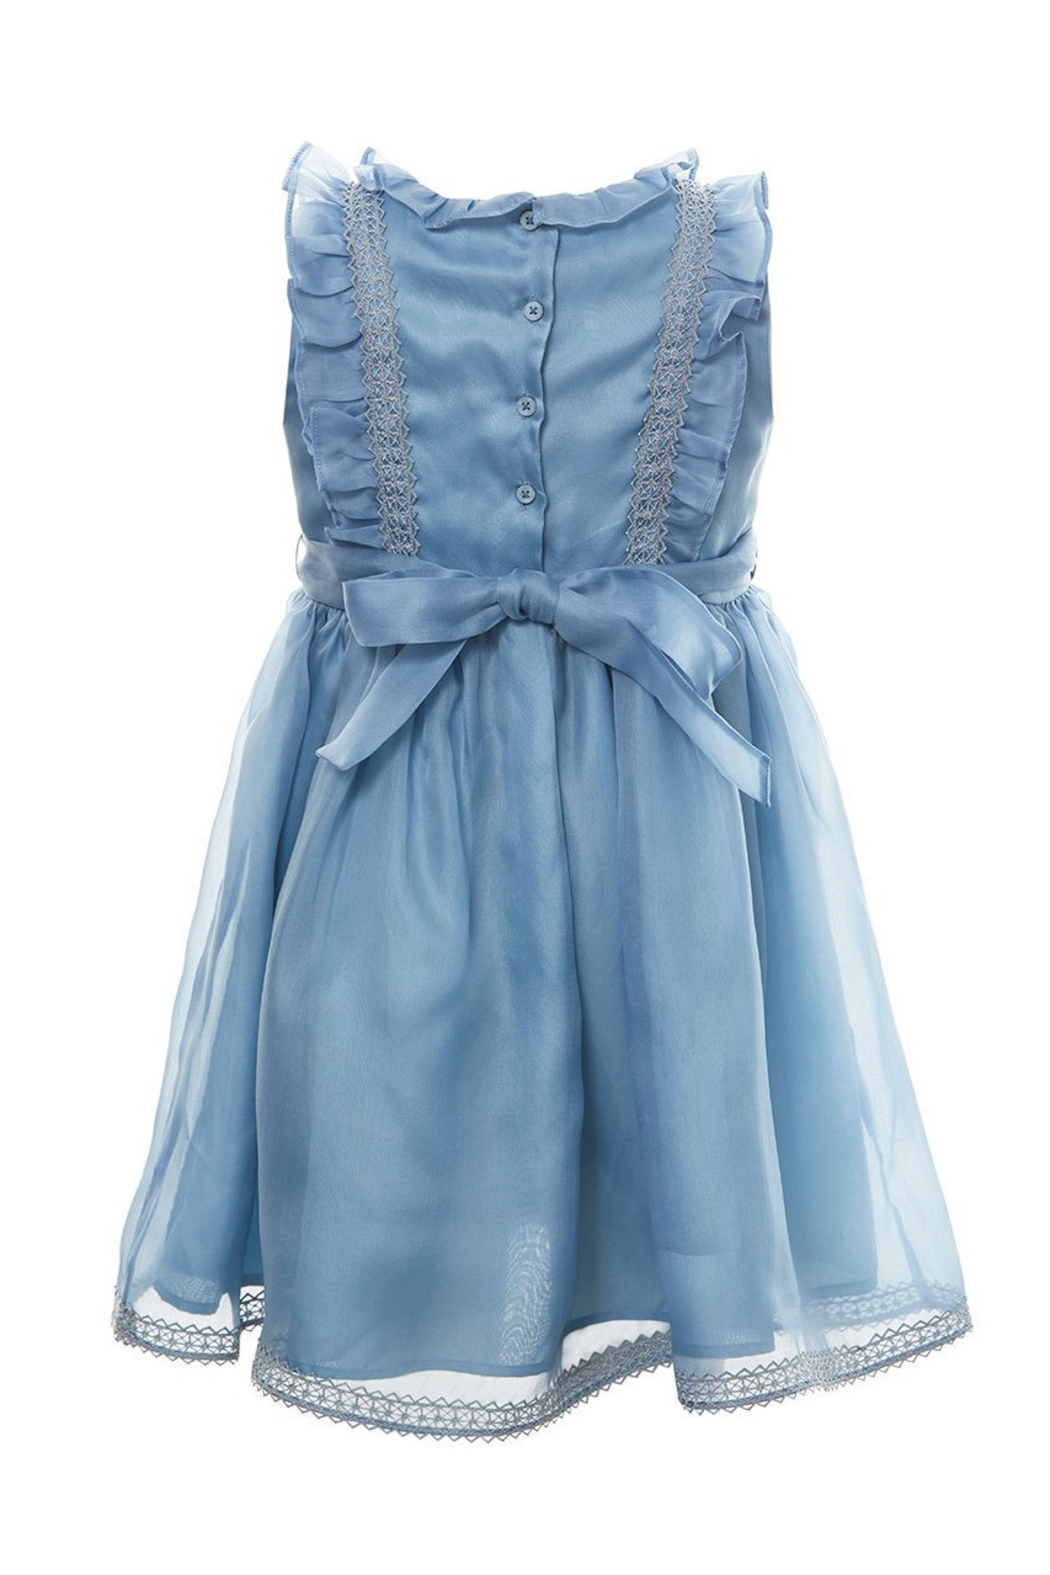 Marie Chantal Blue Organza Silk Dress - Front Full Image